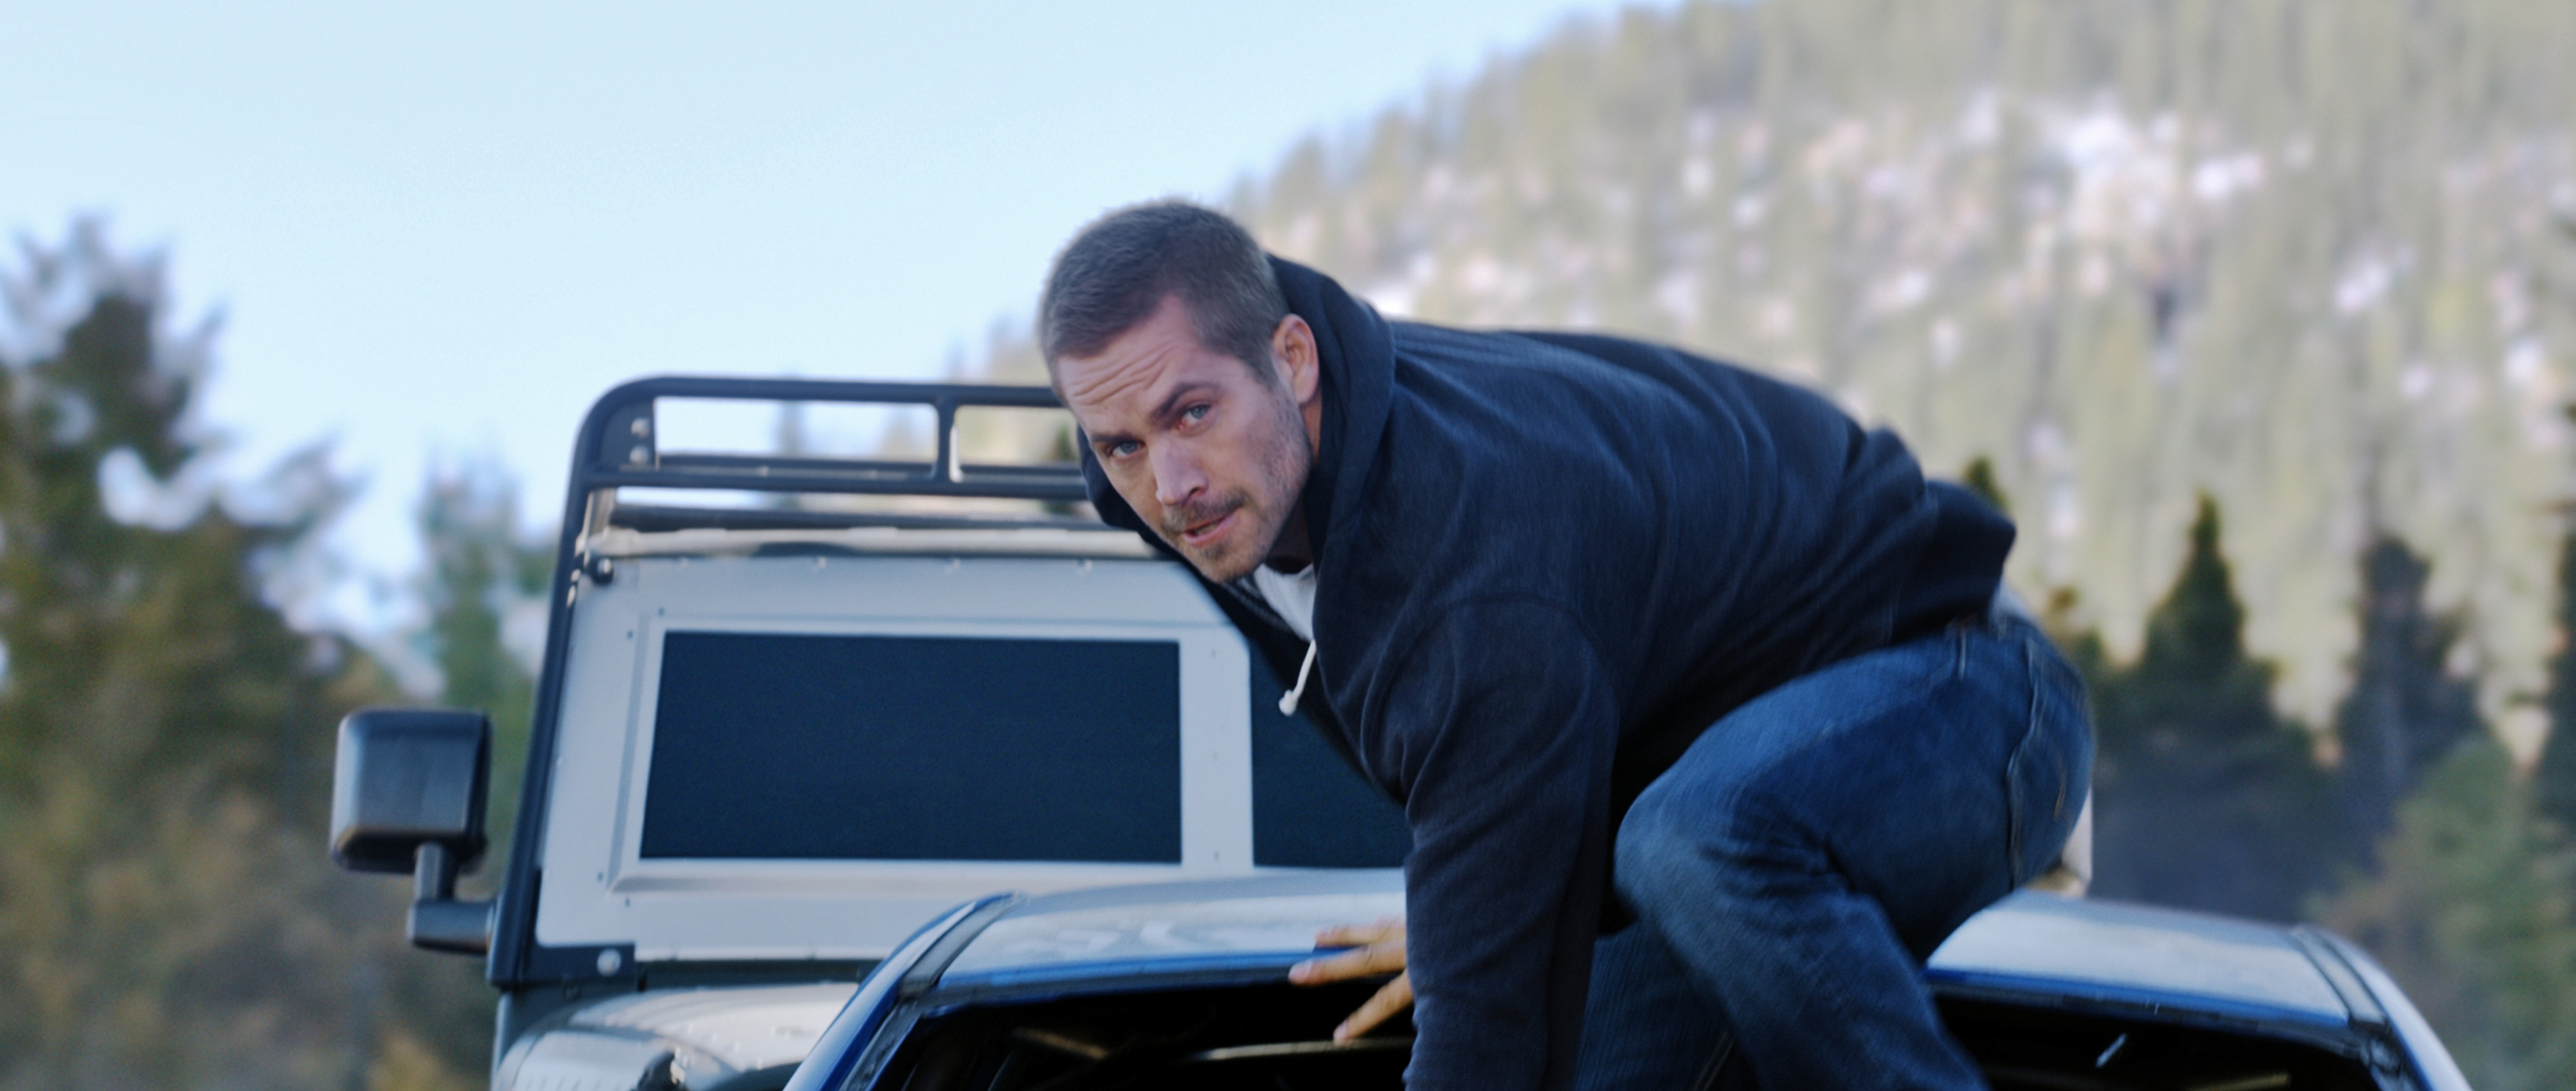 Furious 7 Hd Wallpaper Background Image 3600x1524 Id 633520